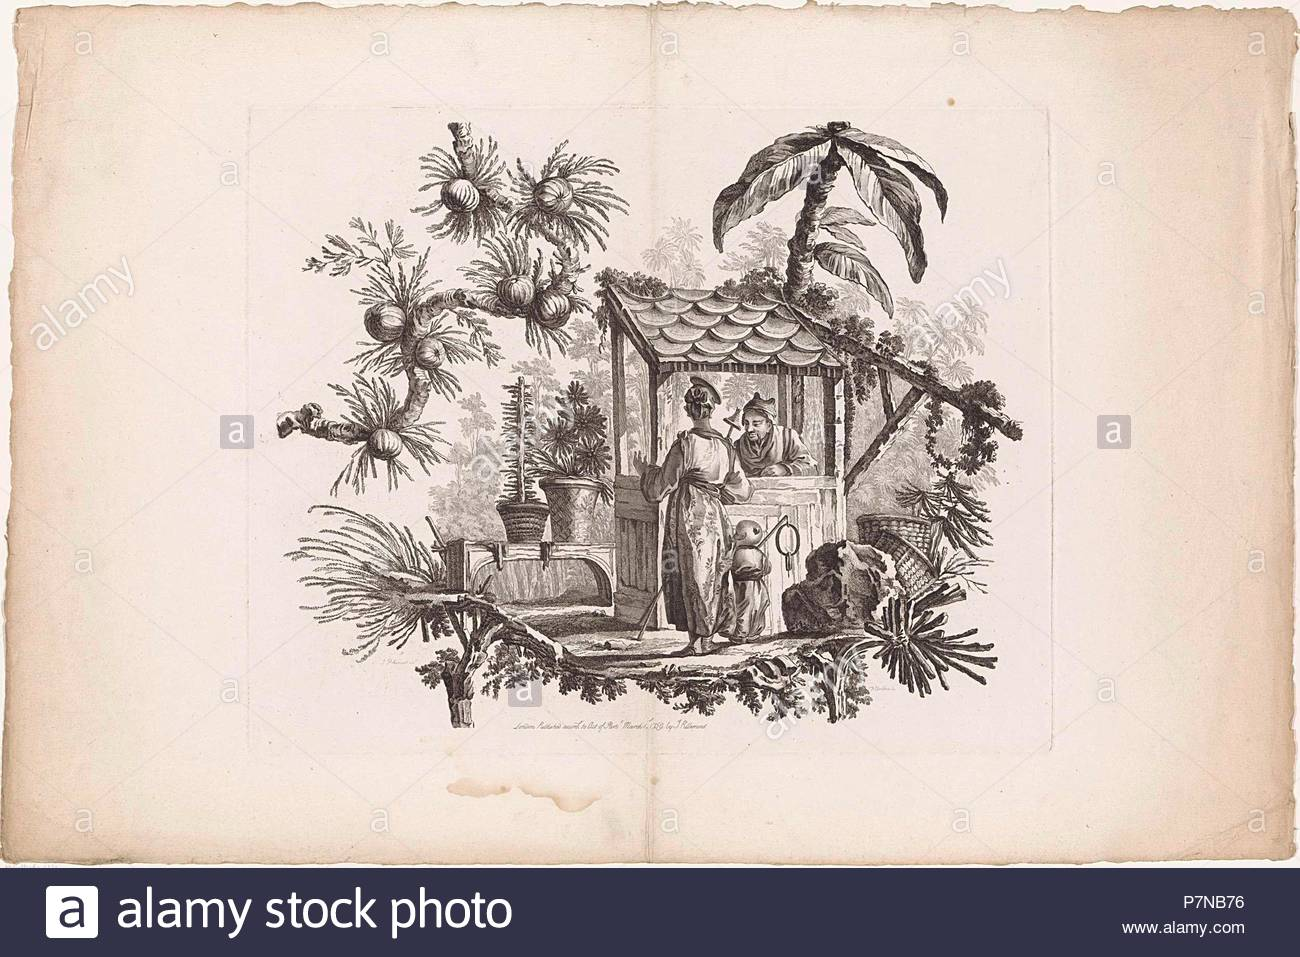 China, Chinese houses and people, I. Pillement inv. F.A. Aveline sc. Londen by I. Pillement, a Paris chez Basan. Francois Antoine Aveline, Jean Baptiste Pillement, Jean Baptiste Pillement, 1728 - 1780. - Stock Image